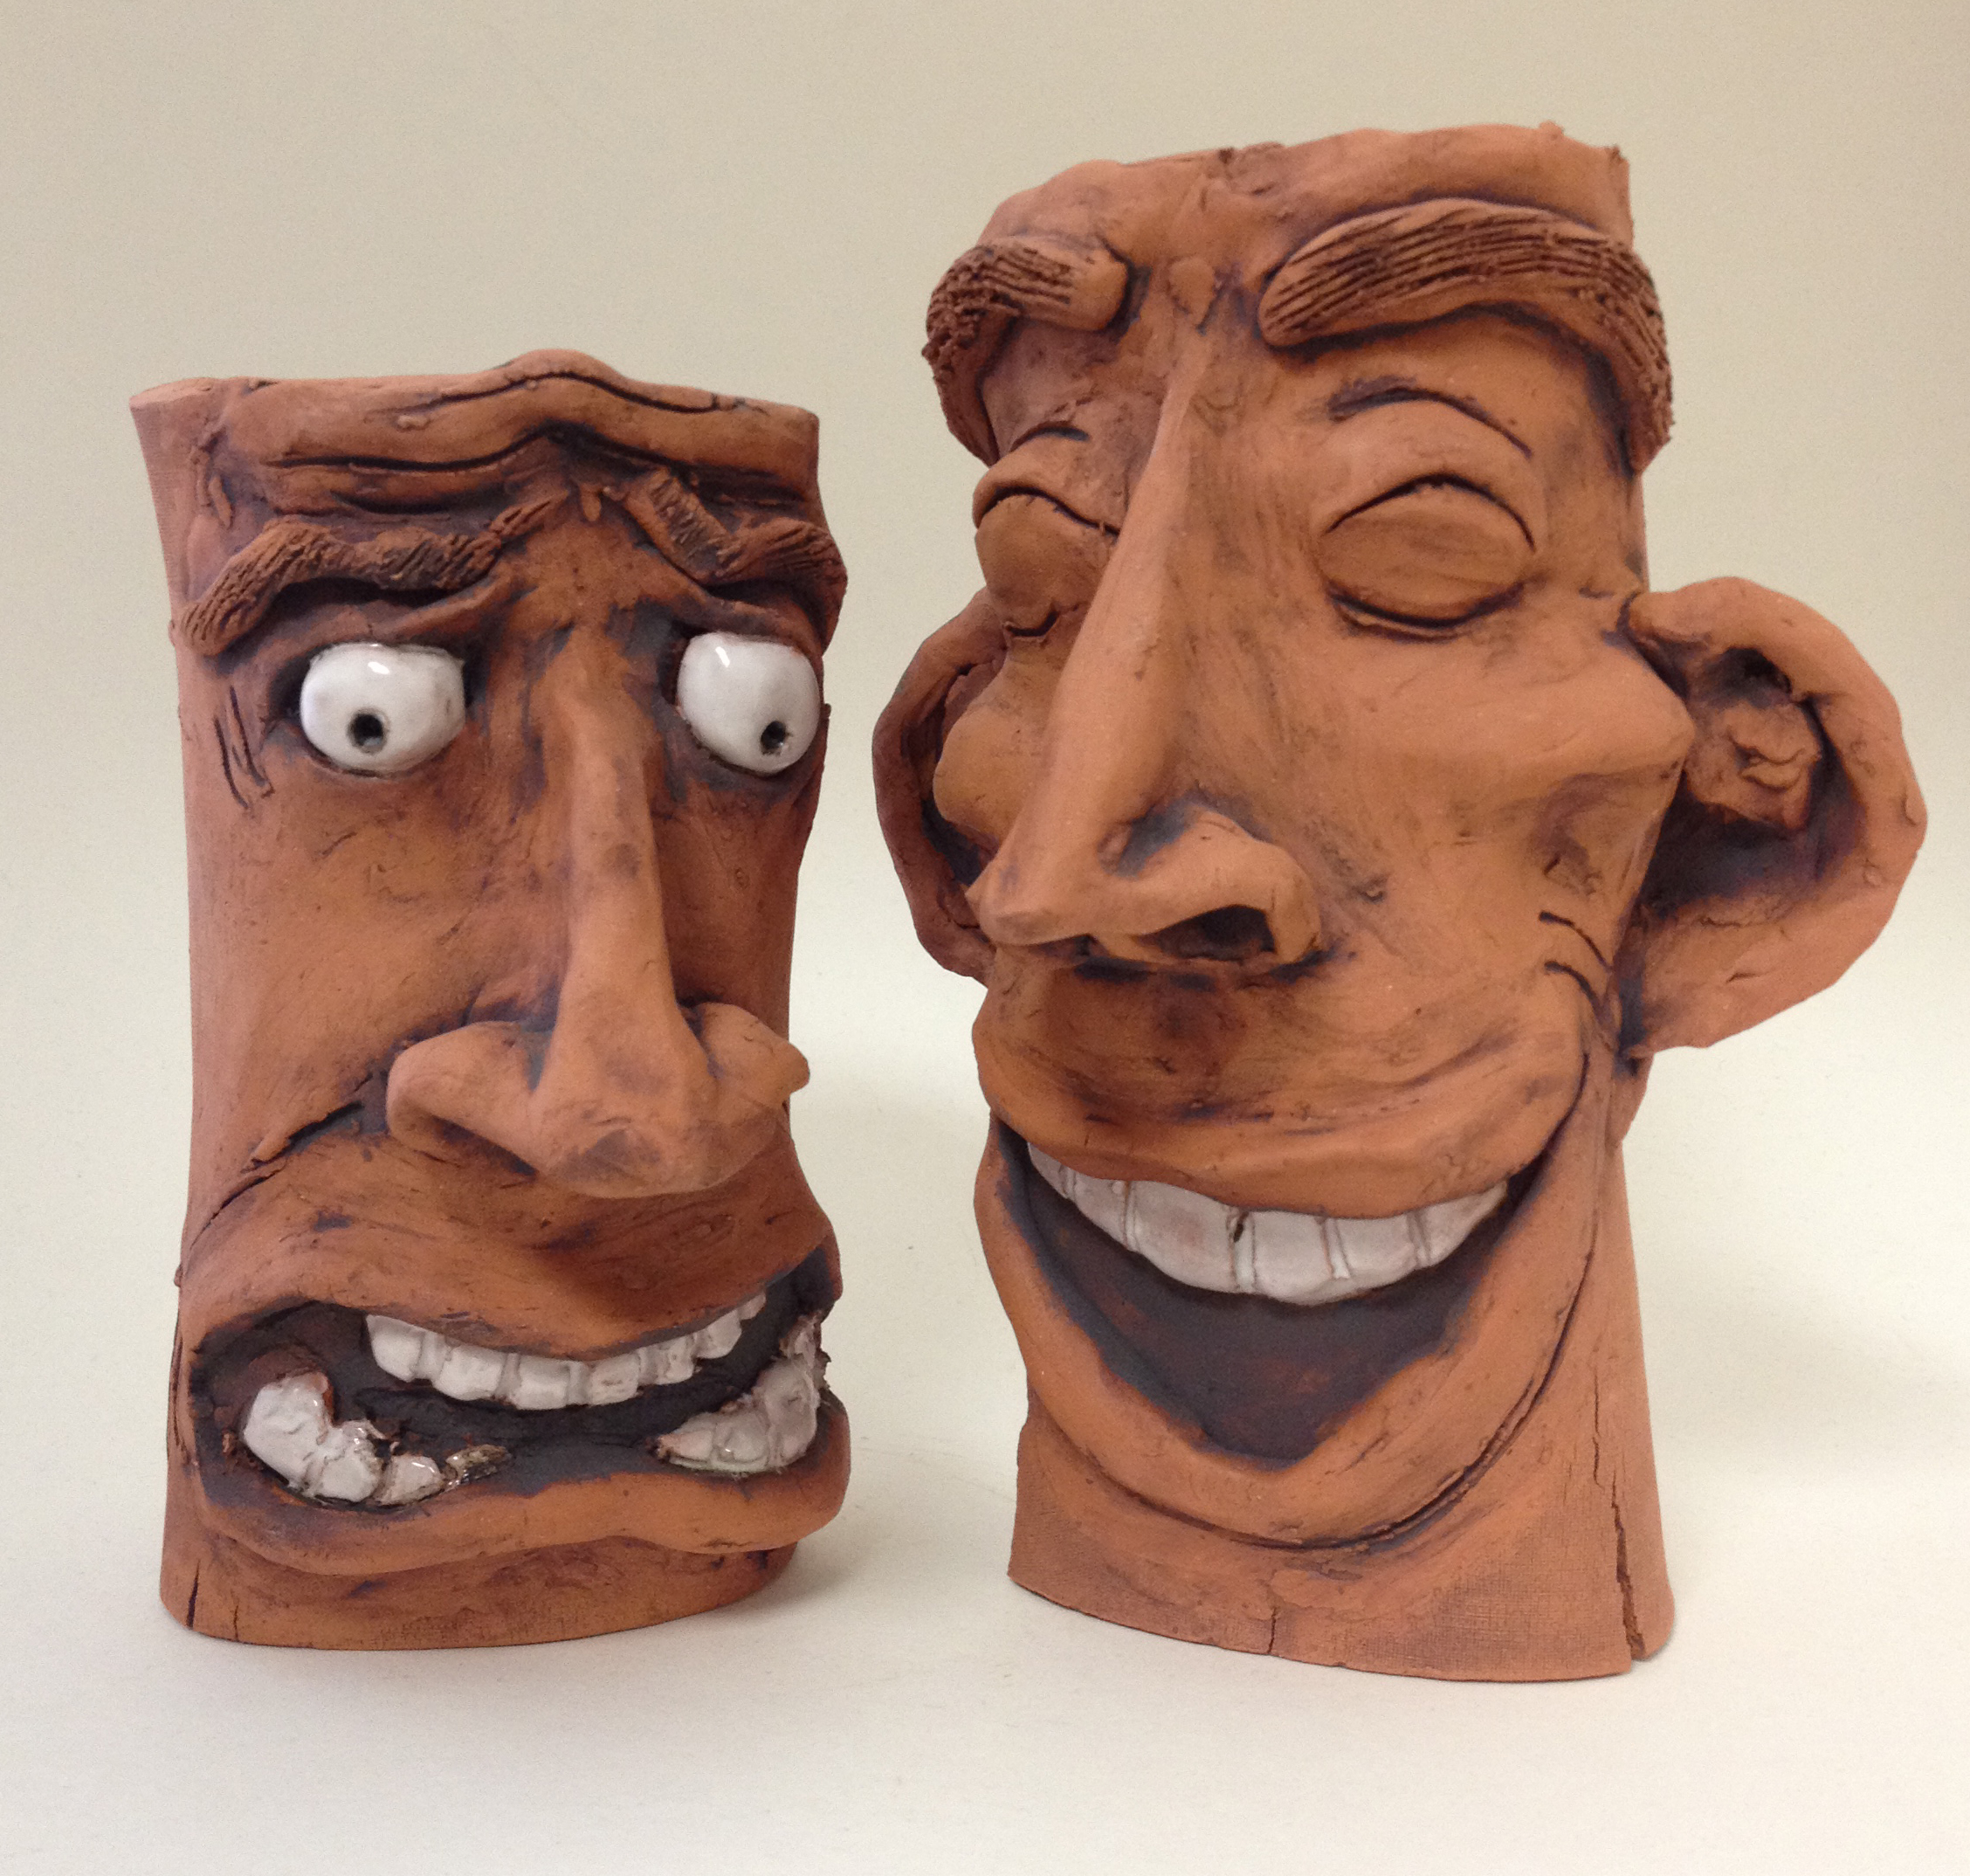 Expressive face vase art with ms long for this project you will create a vase using pinch coil or slab methods or the wheel for advanced students and on this vase you will create a face reviewsmspy